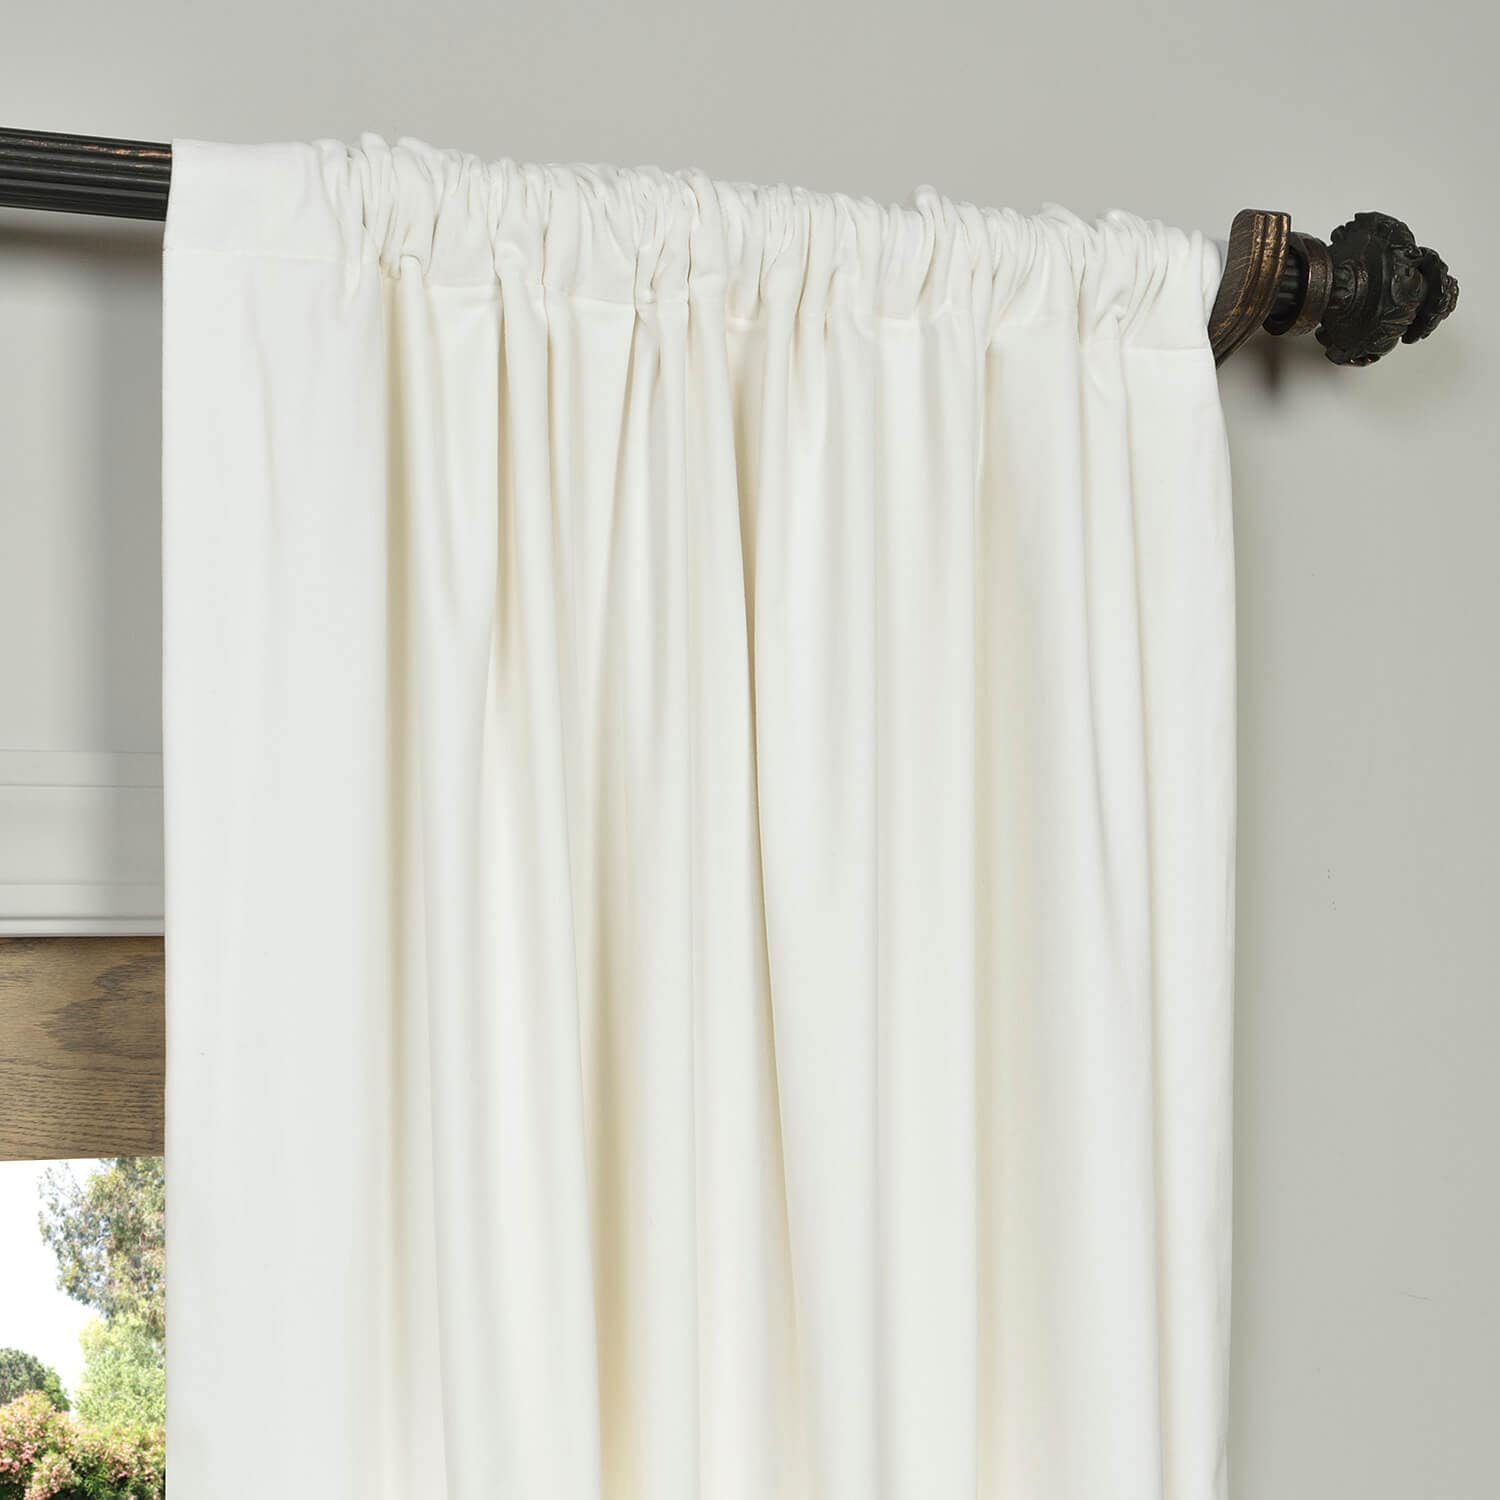 Get White Vintage Cotton Velvet Curtain Velvet Drapes